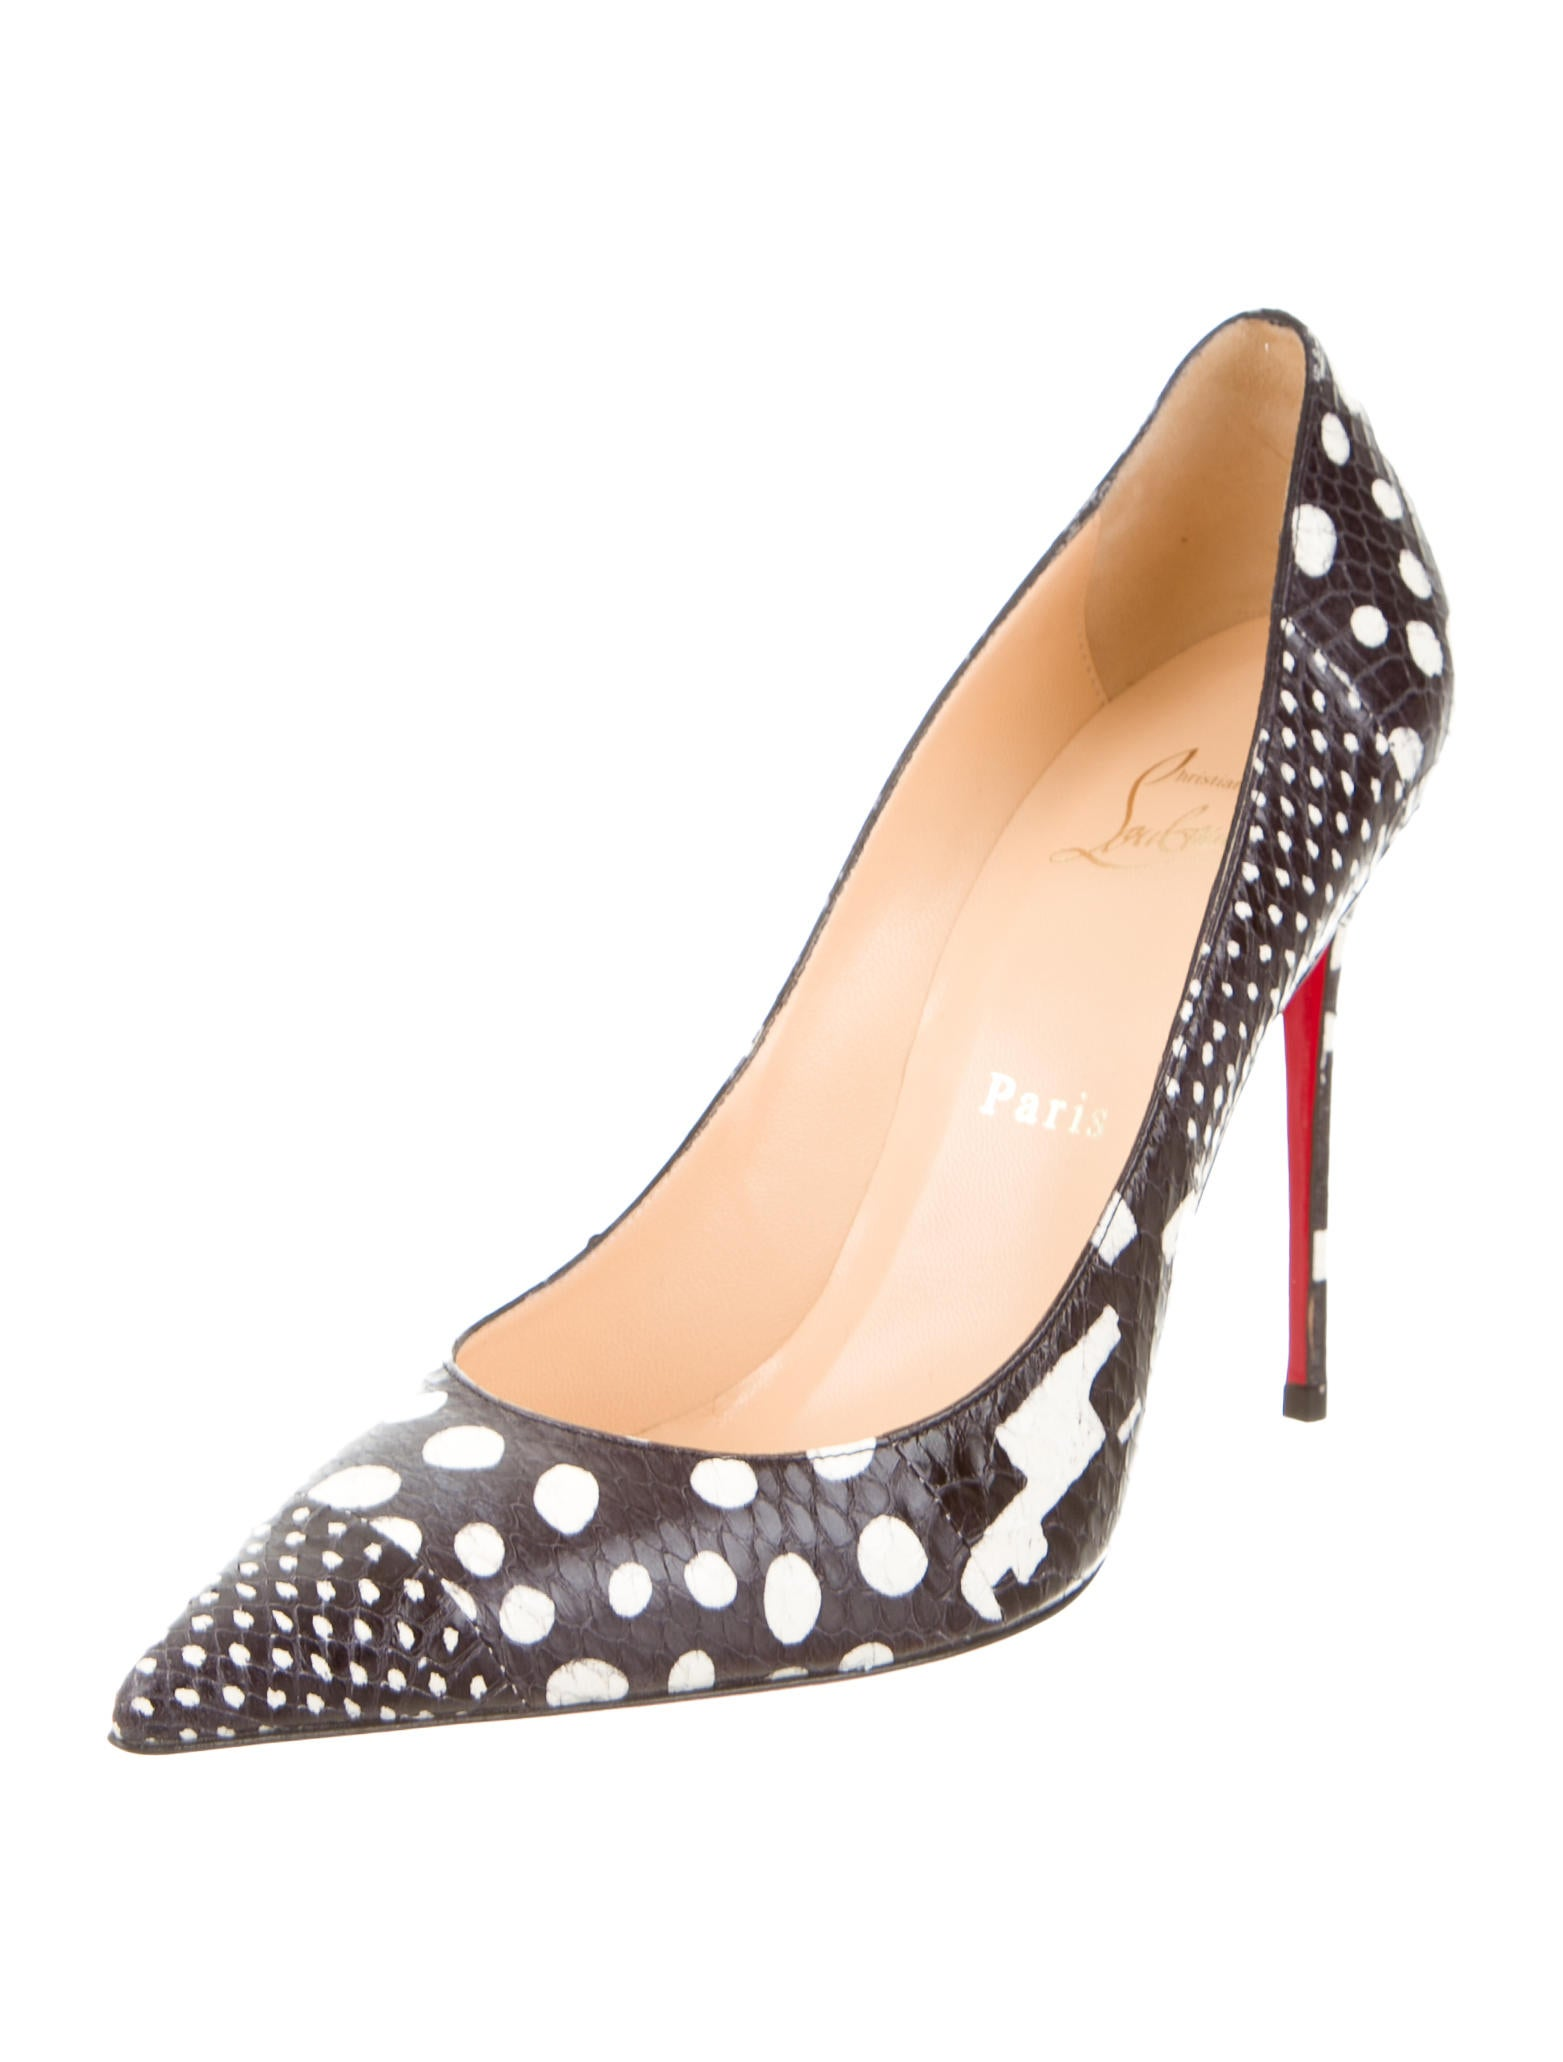 louboutin loafer - Christian Louboutin Snakeskin Pointed-Toe Pumps - Shoes - CHT44389 ...